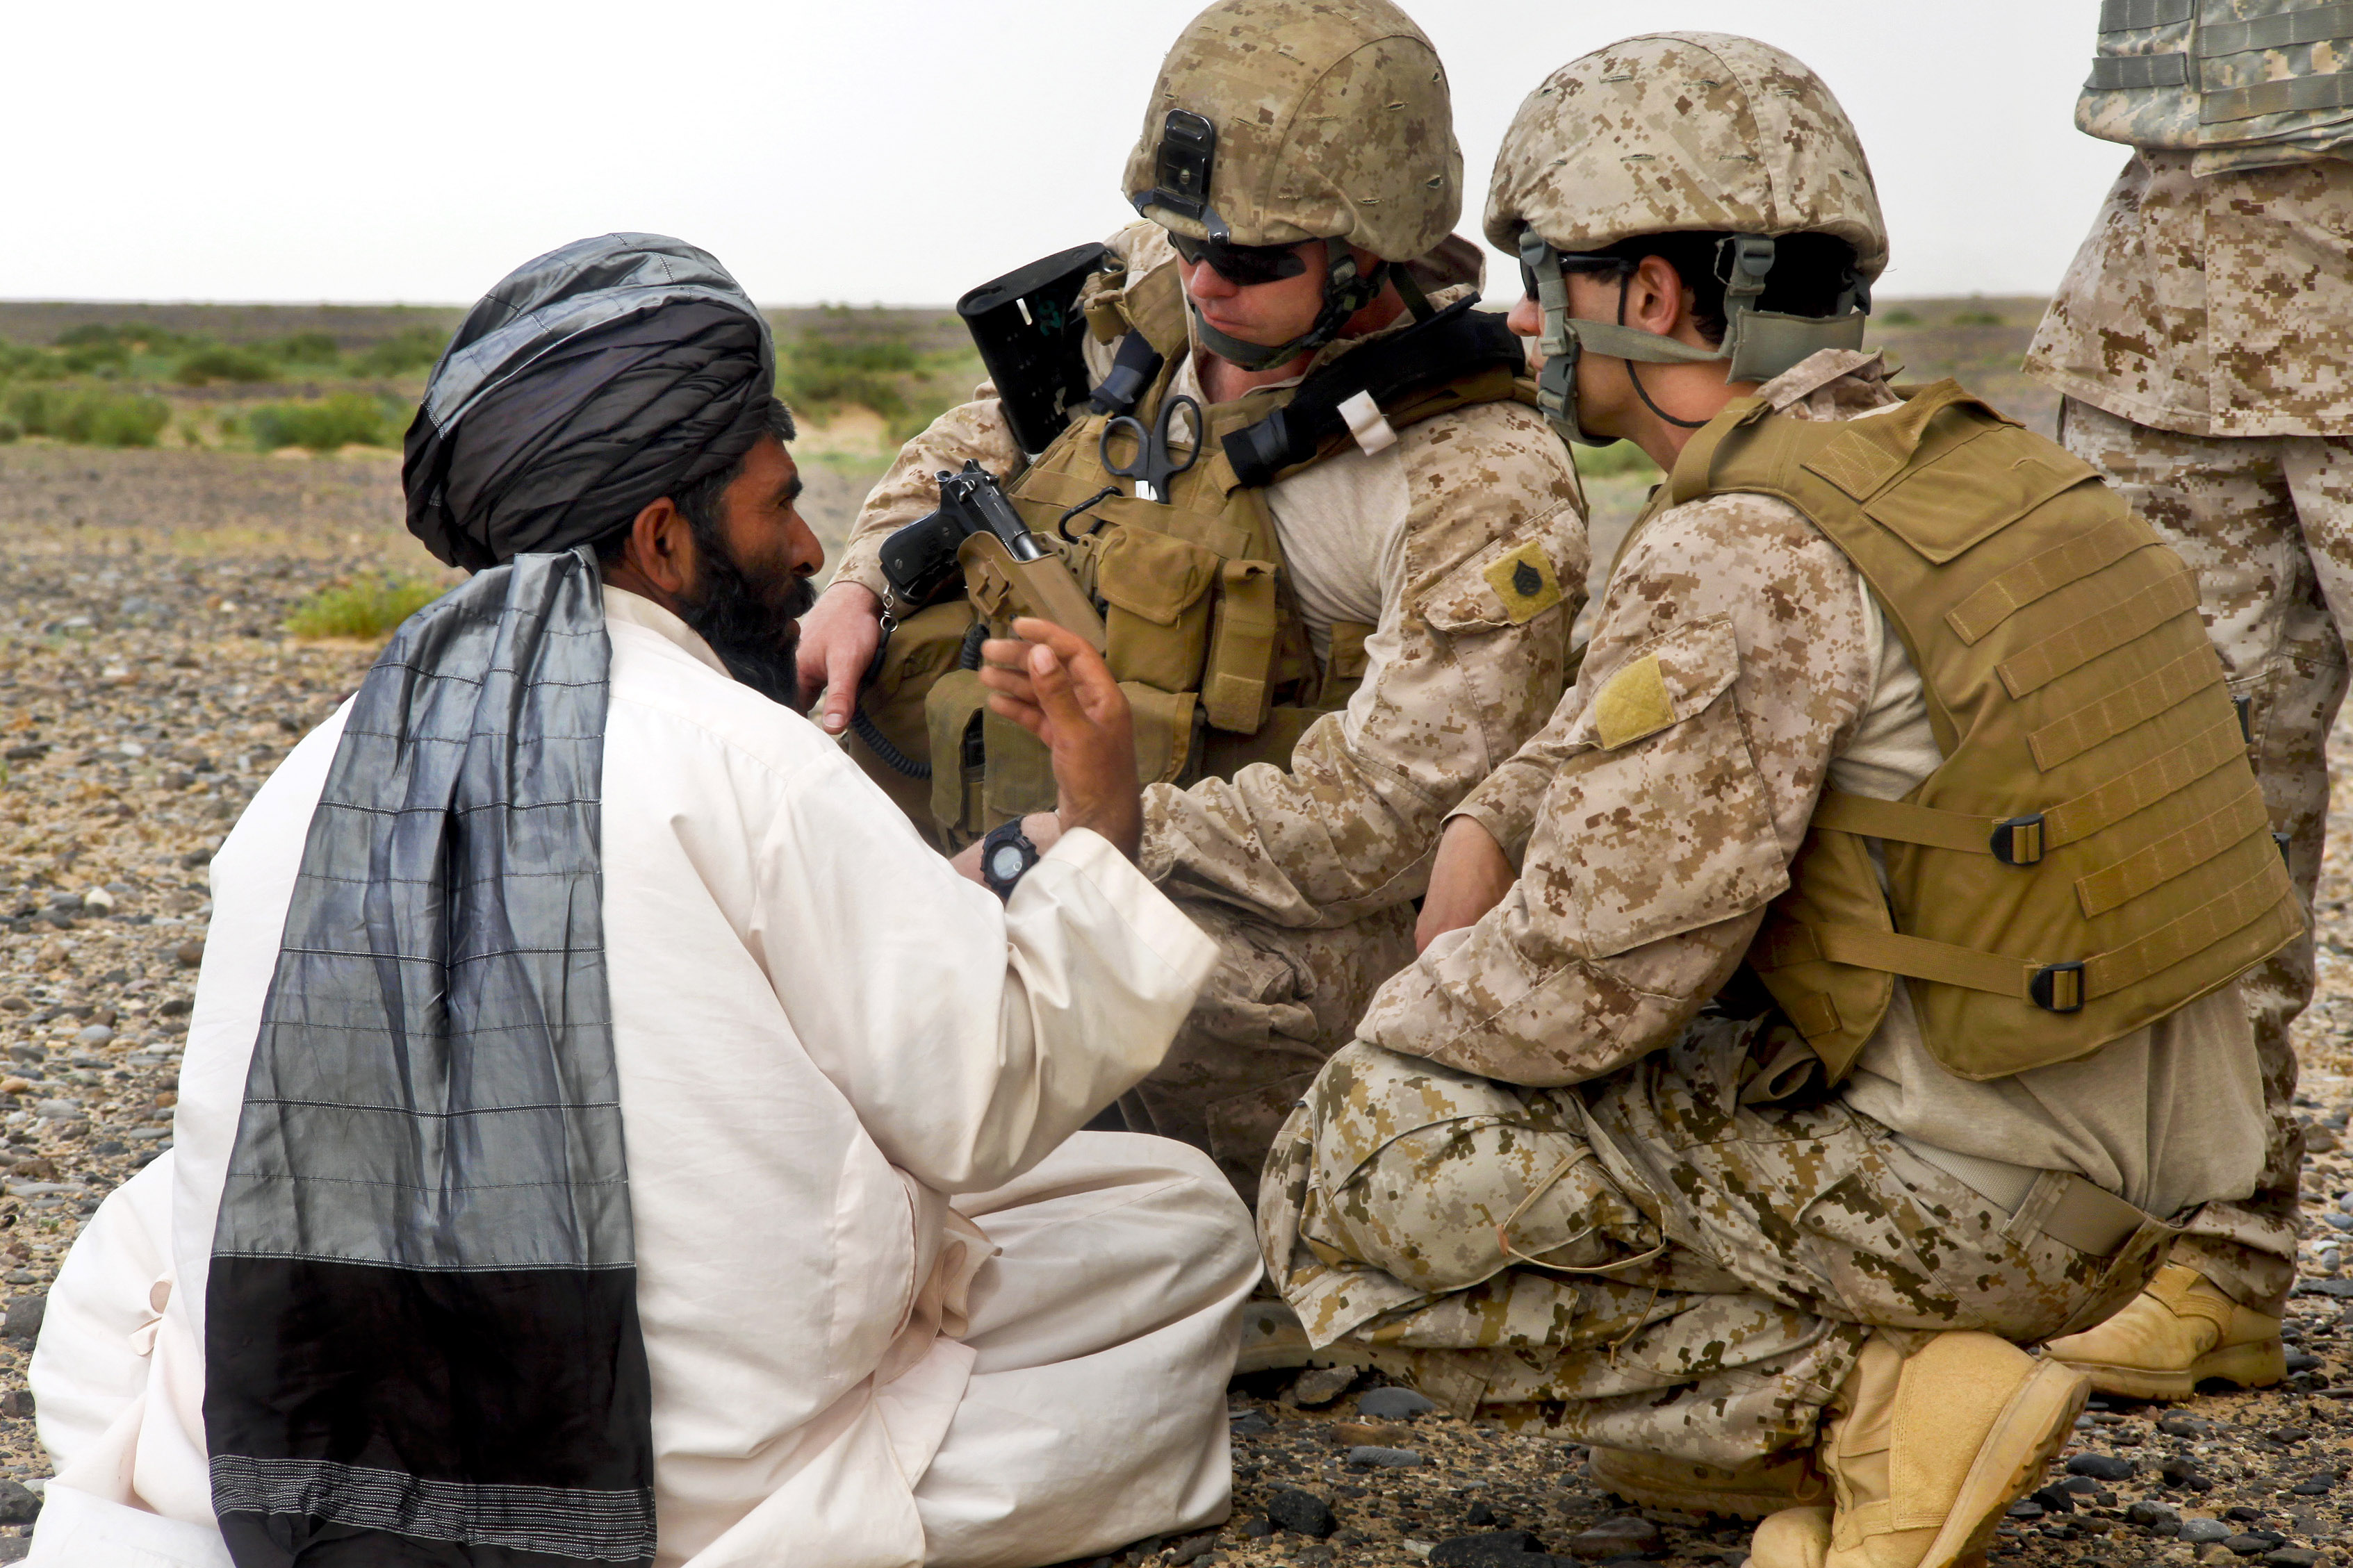 Defense.gov News Photo 110505-M-AN675-007 - U.S. Marines talk with an Afghan civilian during an aerial interdiction mission in southwestern Afghanistan on May 4 2011. The Marines are.jpg